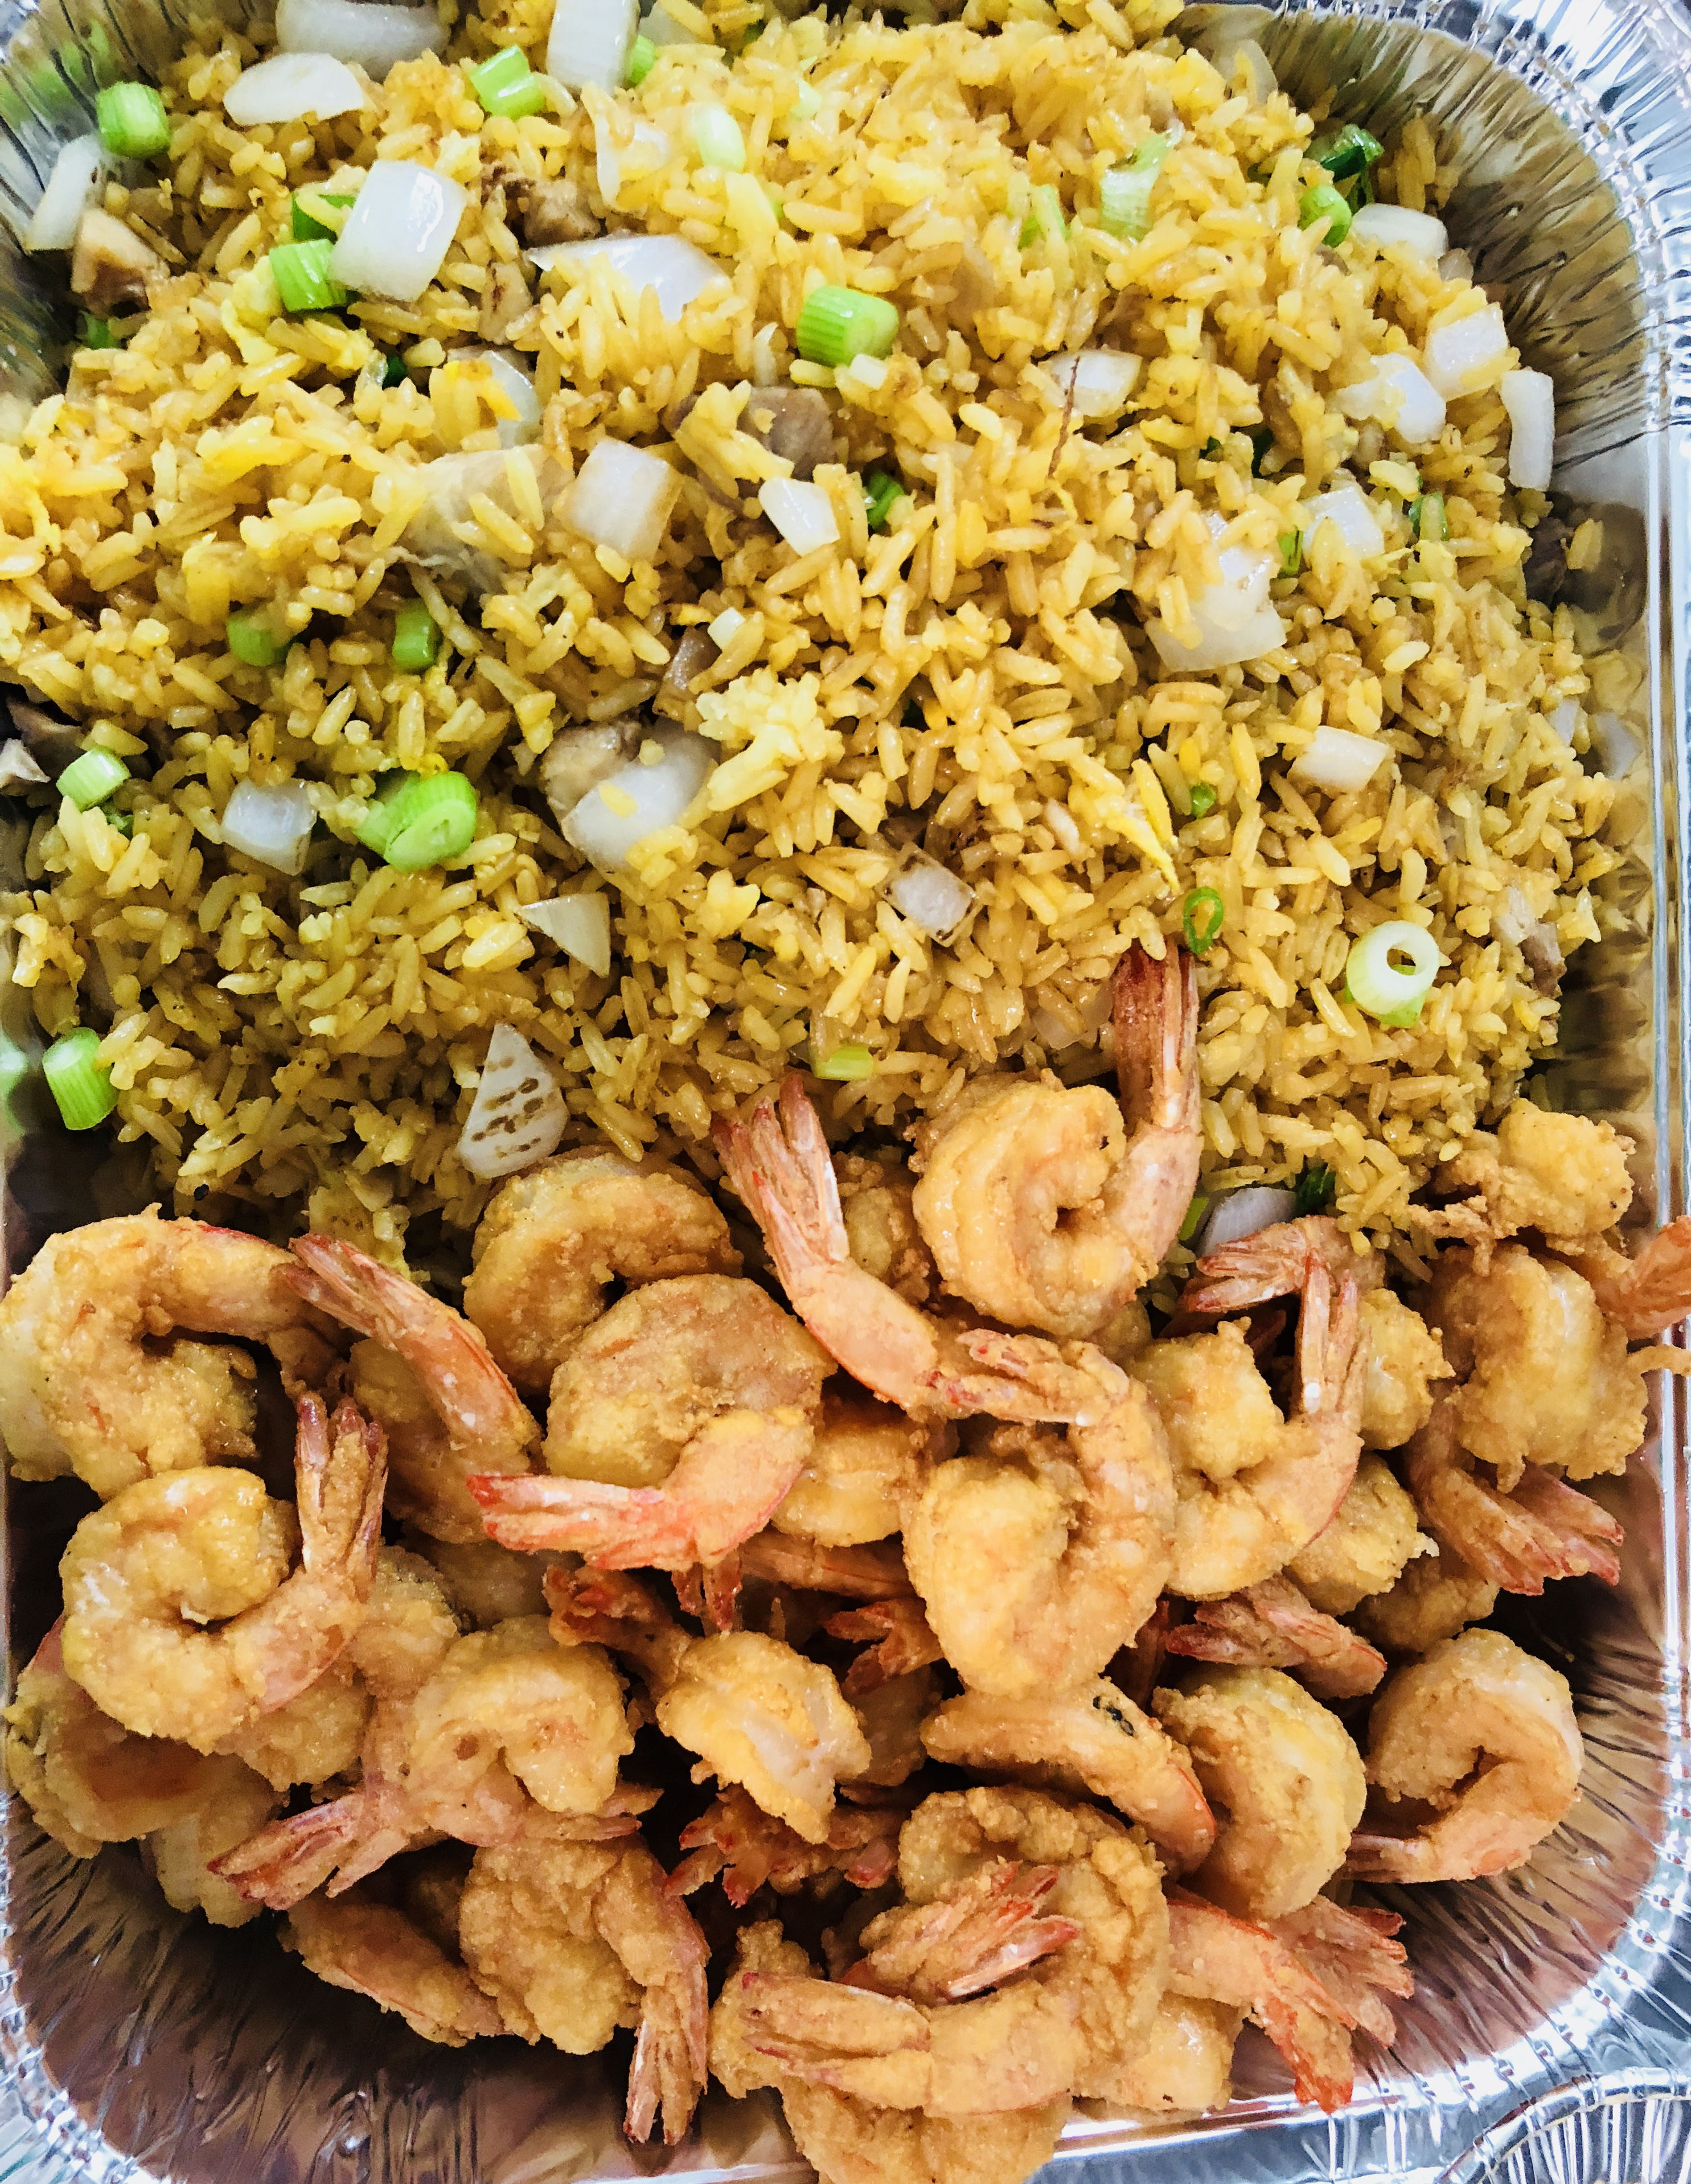 P4. 50 Medium Fried Shrimps with Fried Rice Image